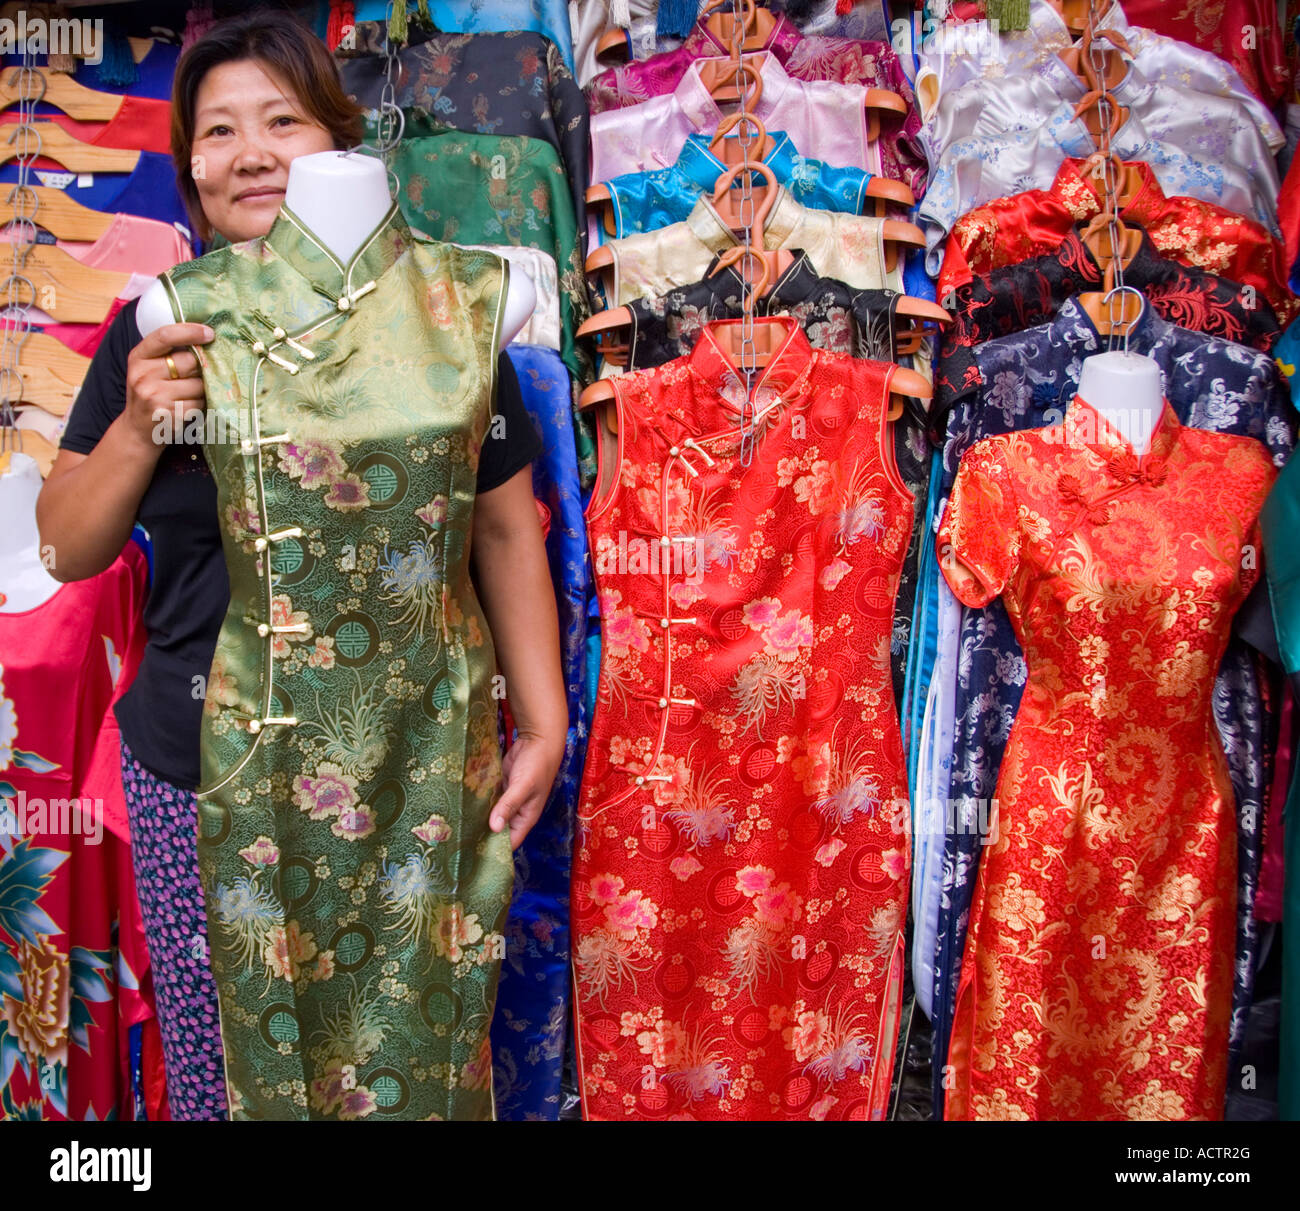 e9738861e Silk Chinese dresses on sale at market stall in Dashilan area of Beijing  2007